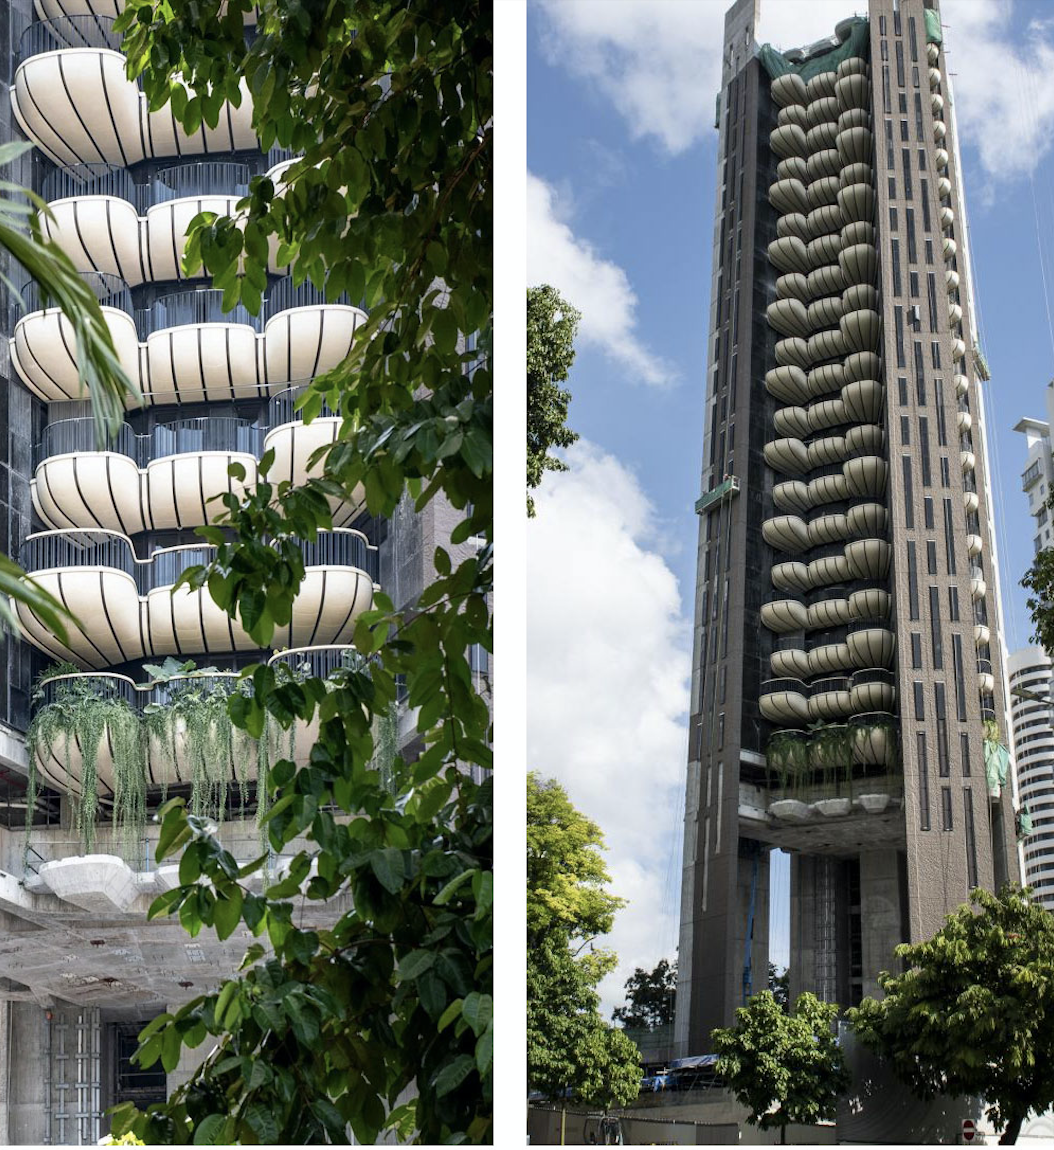 Cantilevered balconies offer solar shading while windows open on three sides to allow natural cross-ventilation. The tower boasts a Green Mark Platinum rating.